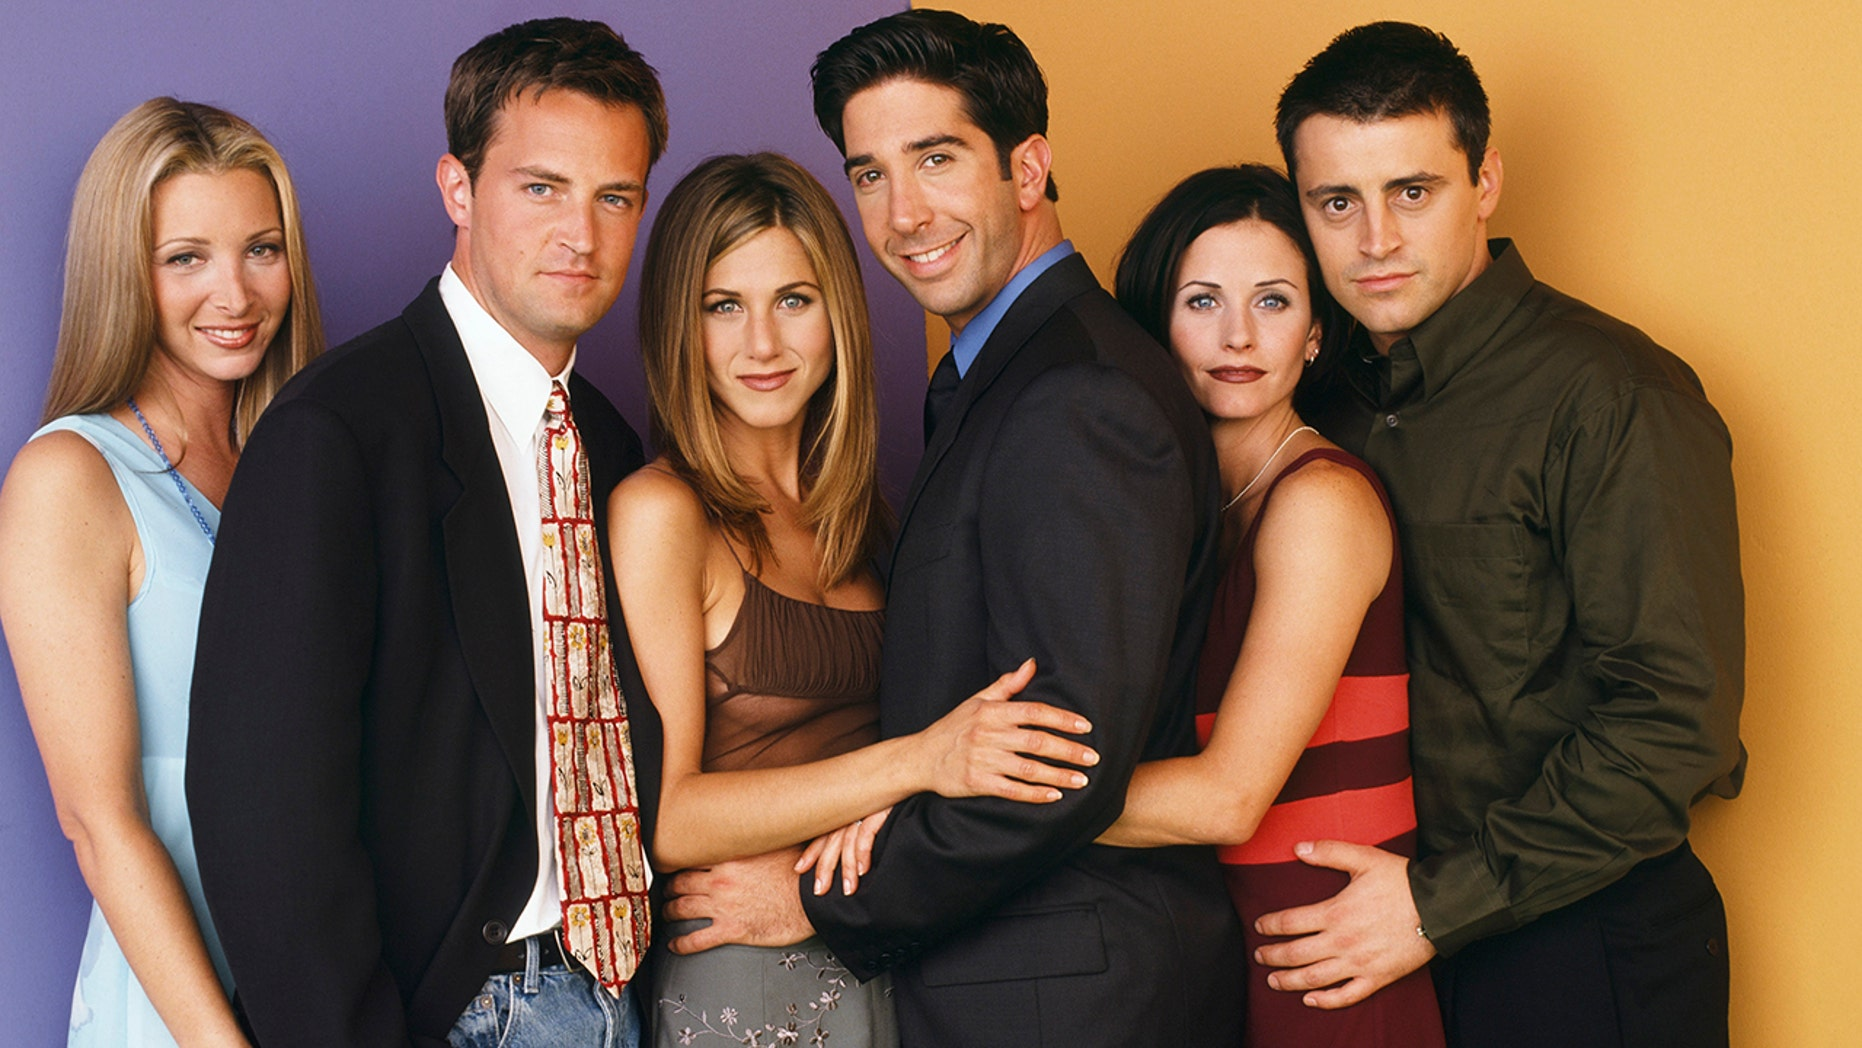 """""""Friends"""" has been over for more than 15 years, but it appears it's still as popular as ever. Netflix agreed to pay $100 million to make it available to subscribers through 2019 following public outcry after news broke it was pulling it off."""